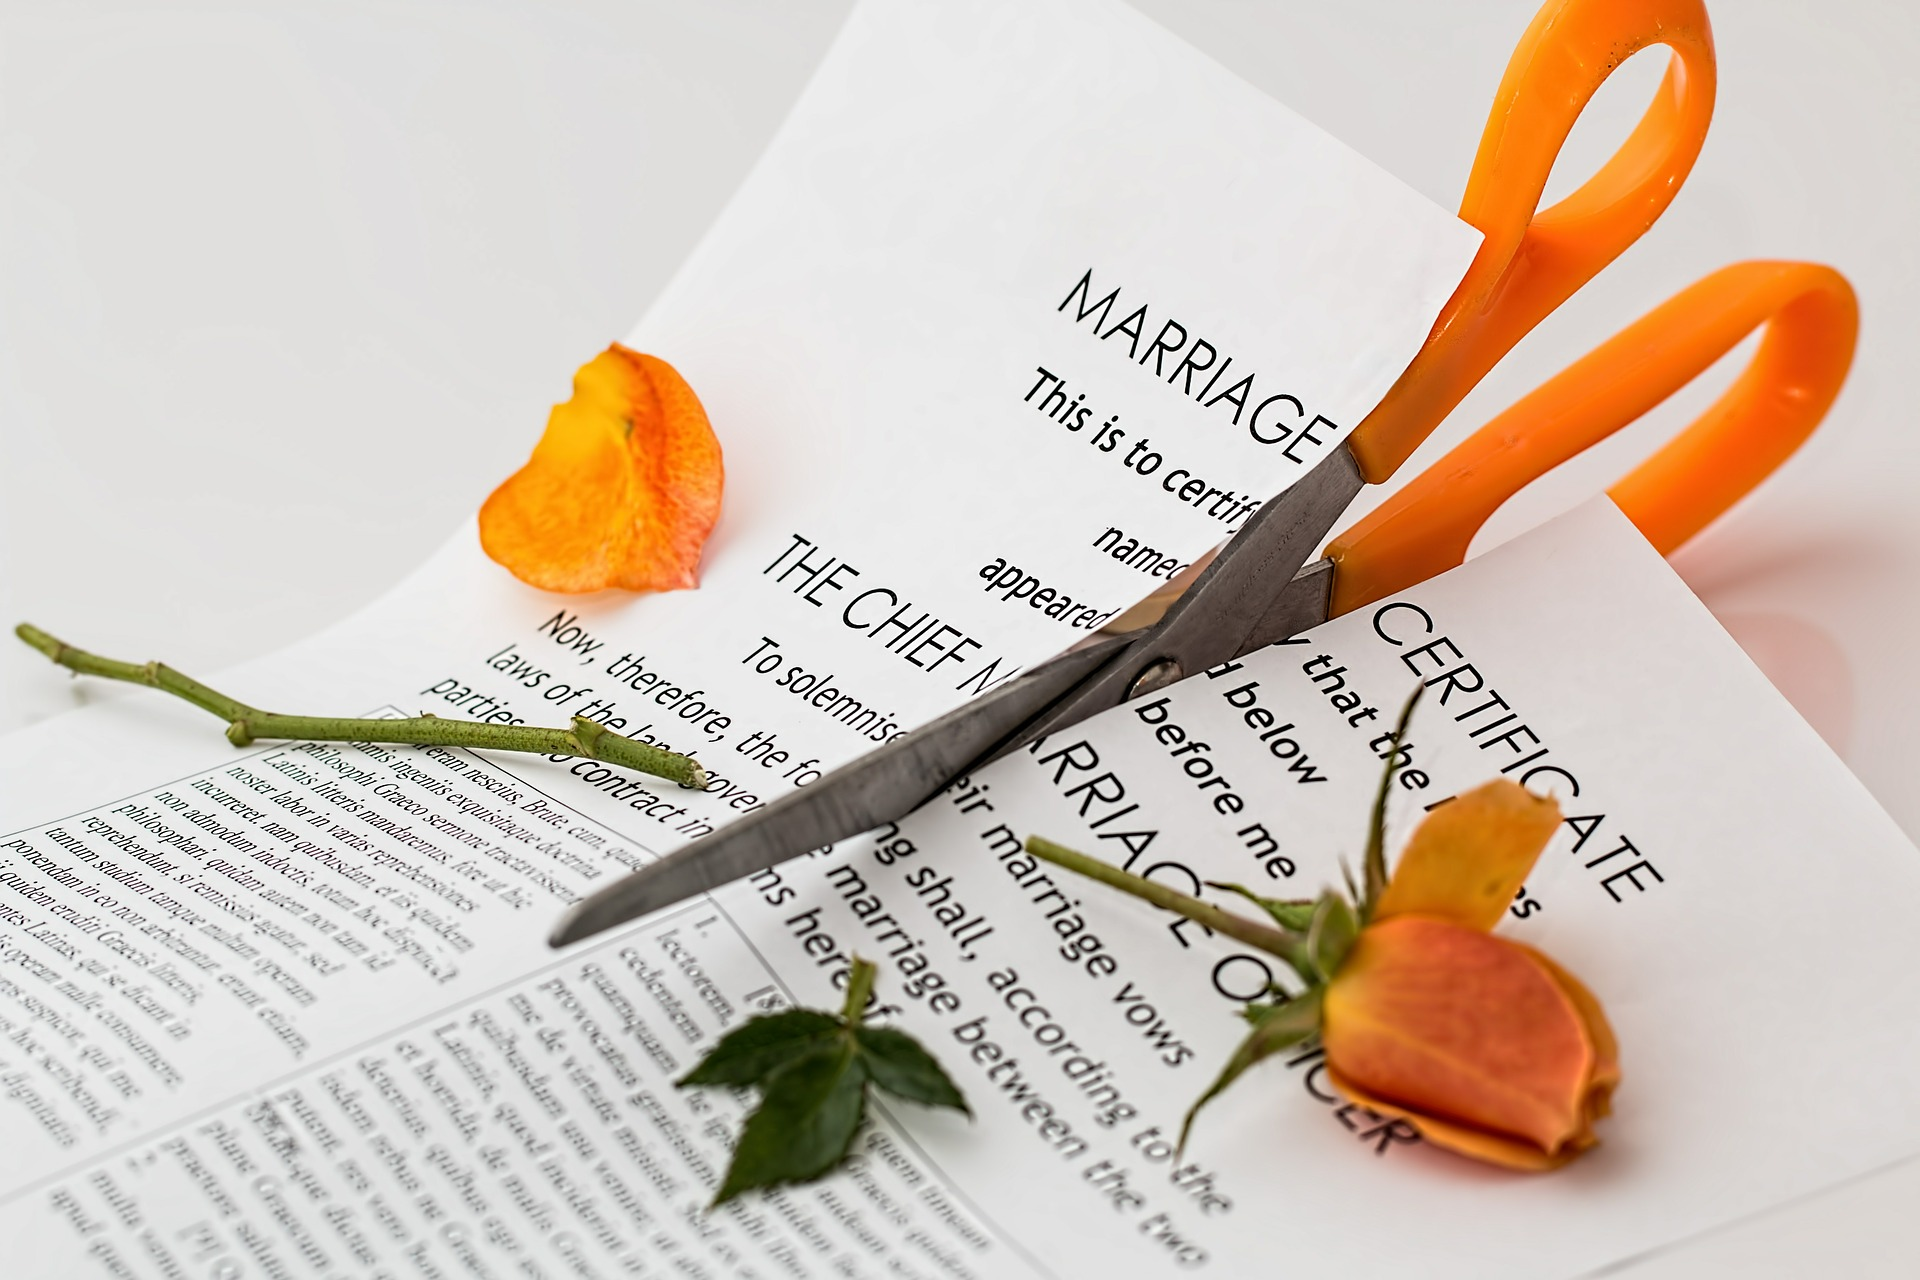 How To Write About My Failed Marriage